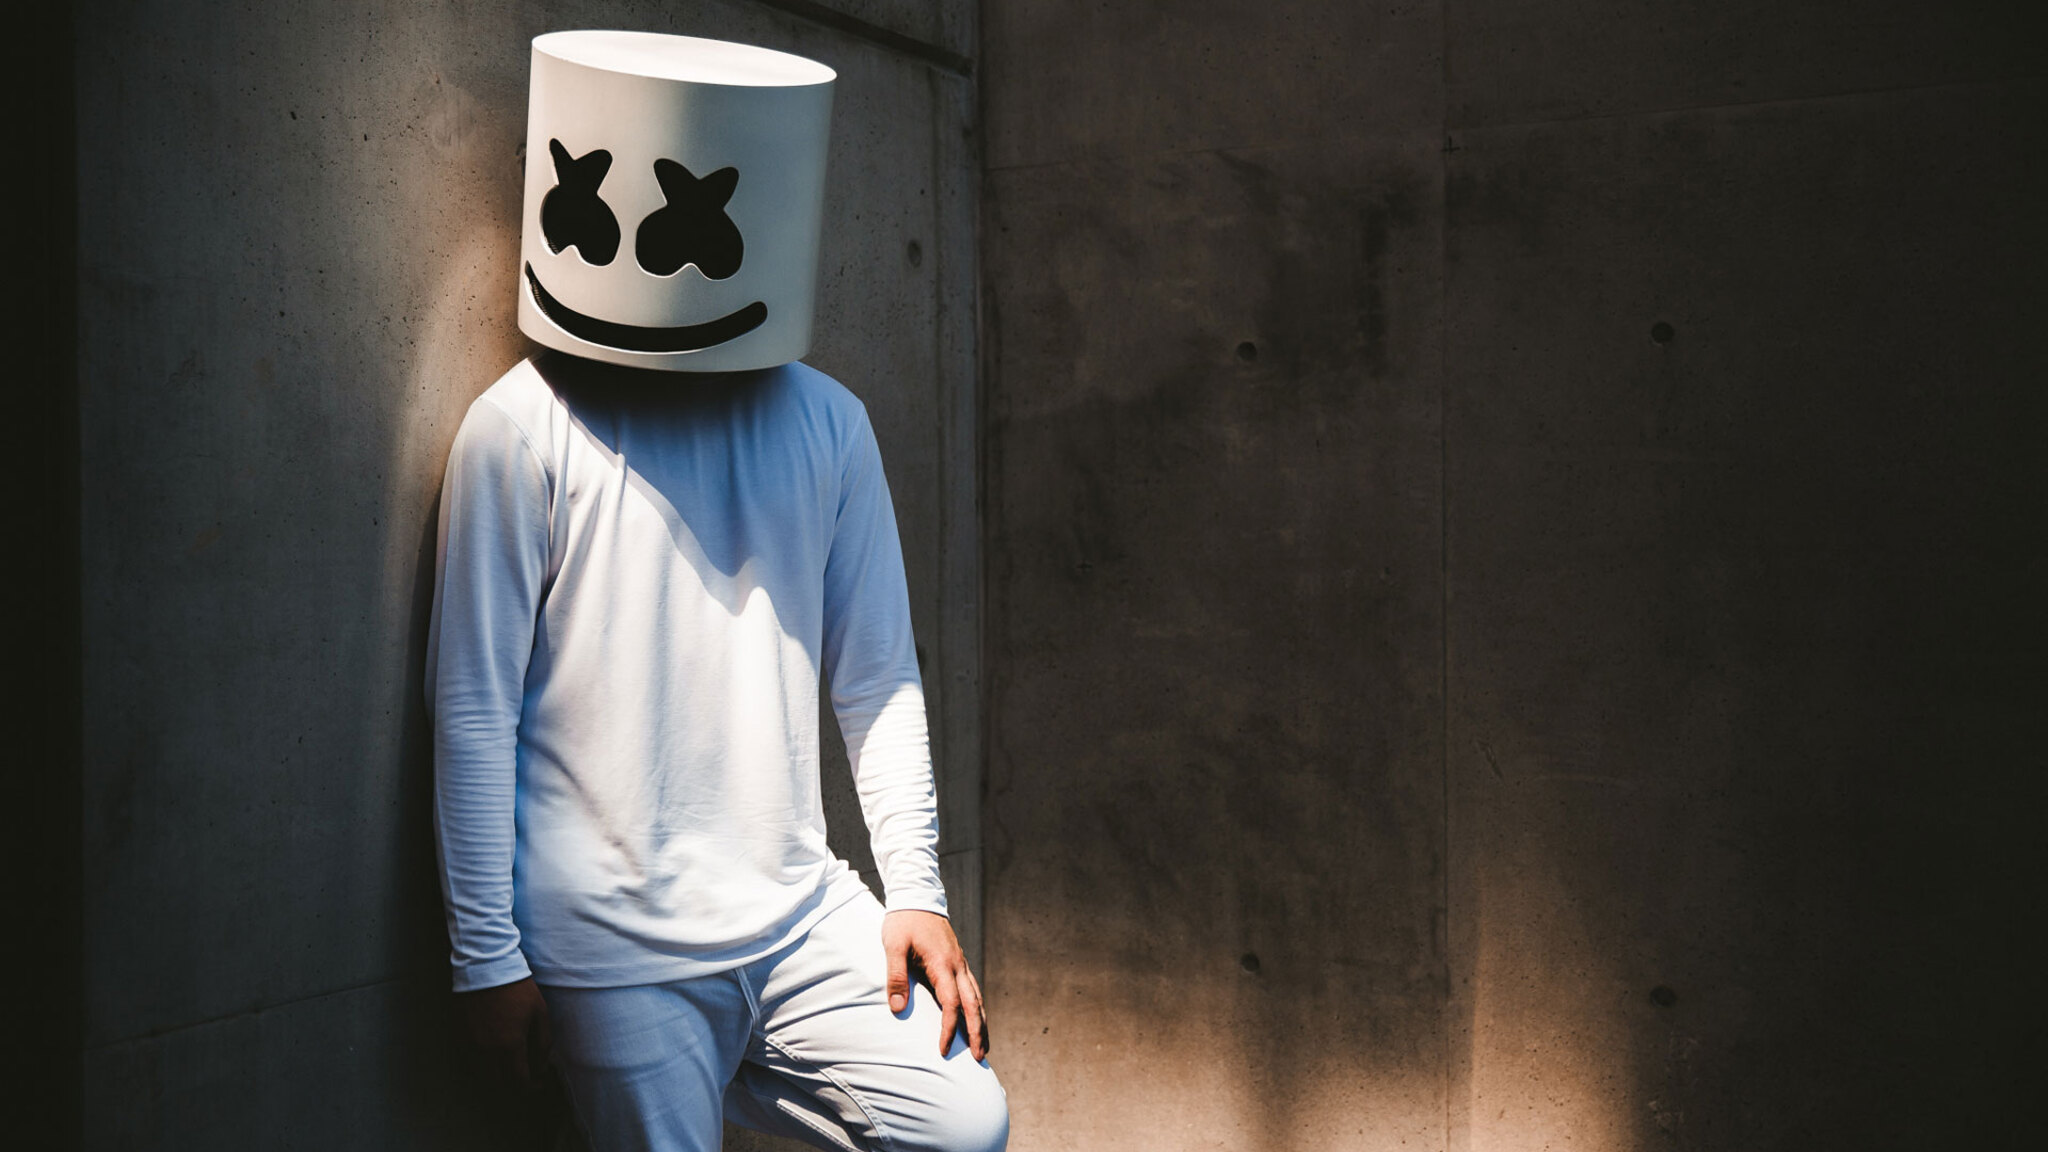 Download Marshmello Alone HD 4k Wallpapers In 2048x1152 Screen Resolution